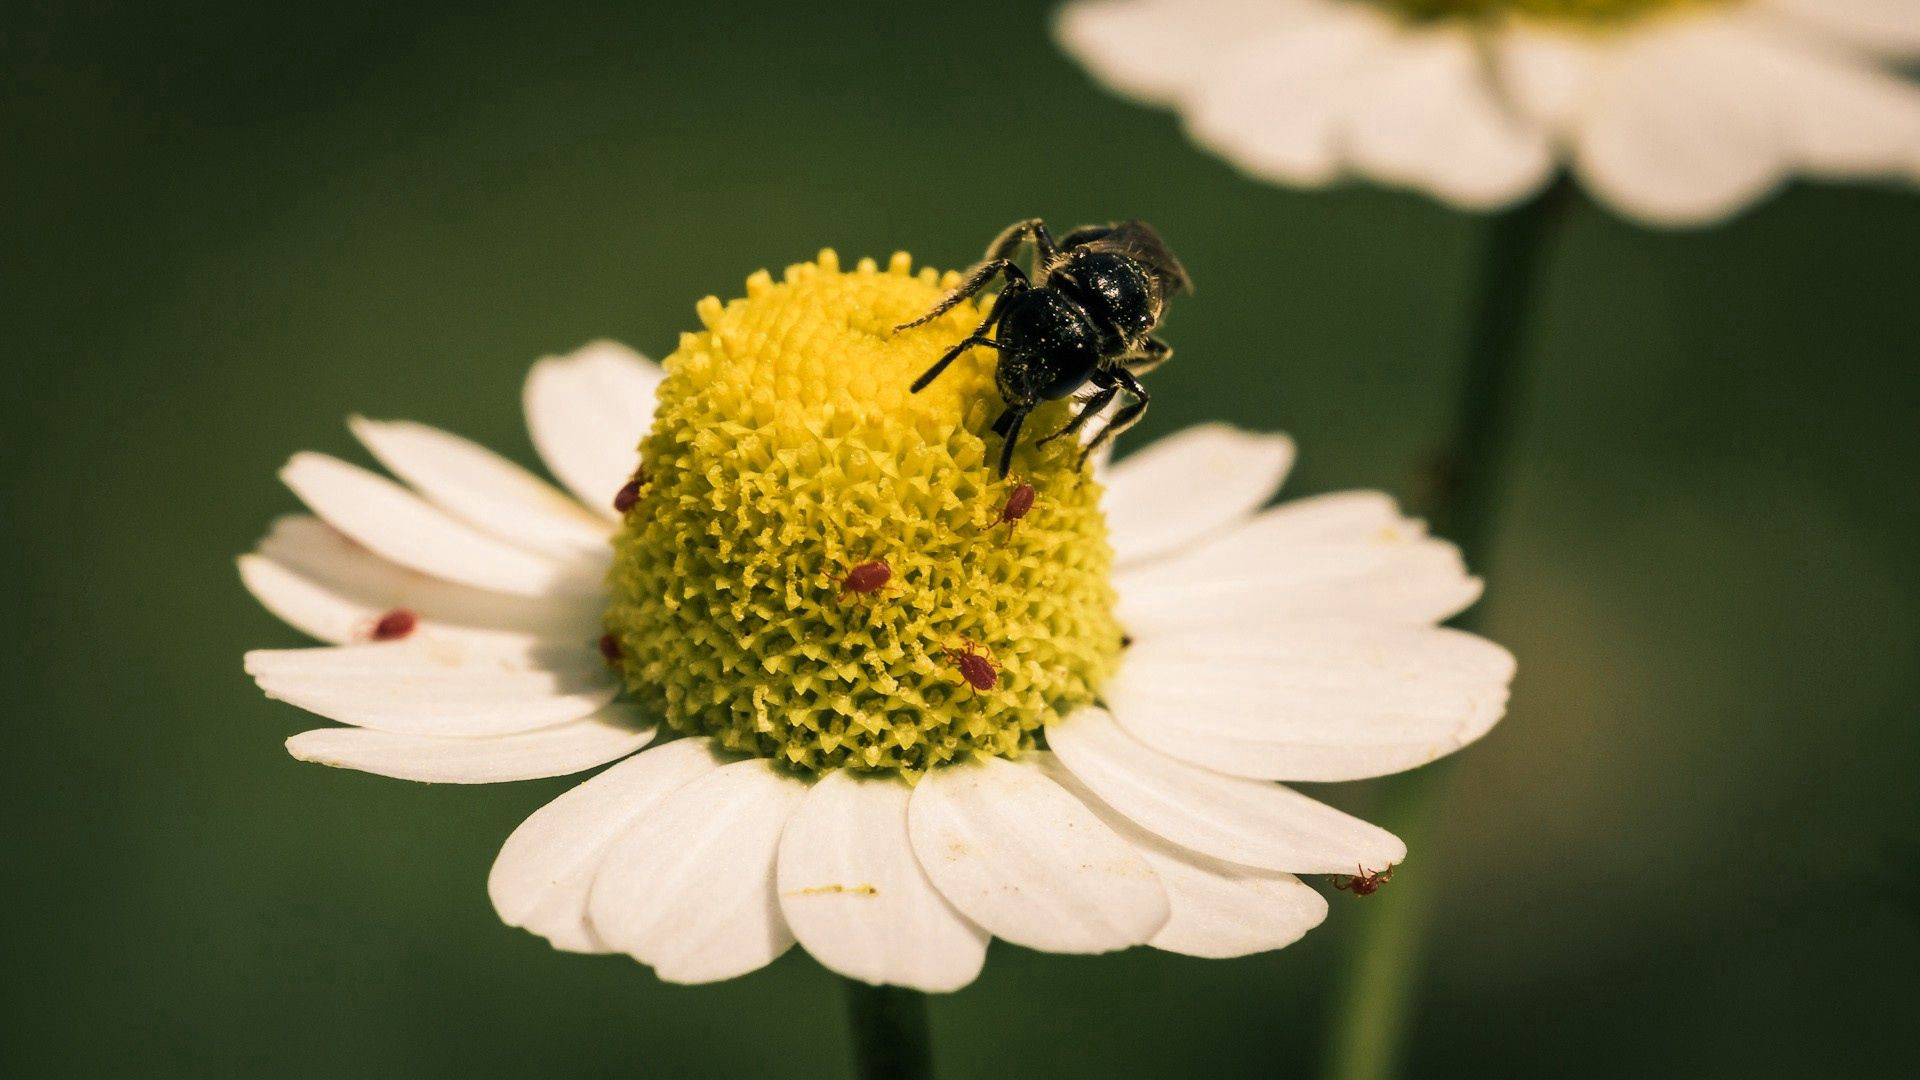 109815 download wallpaper Macro, Flower, Bee, Pollination, Chamomile, Camomile screensavers and pictures for free